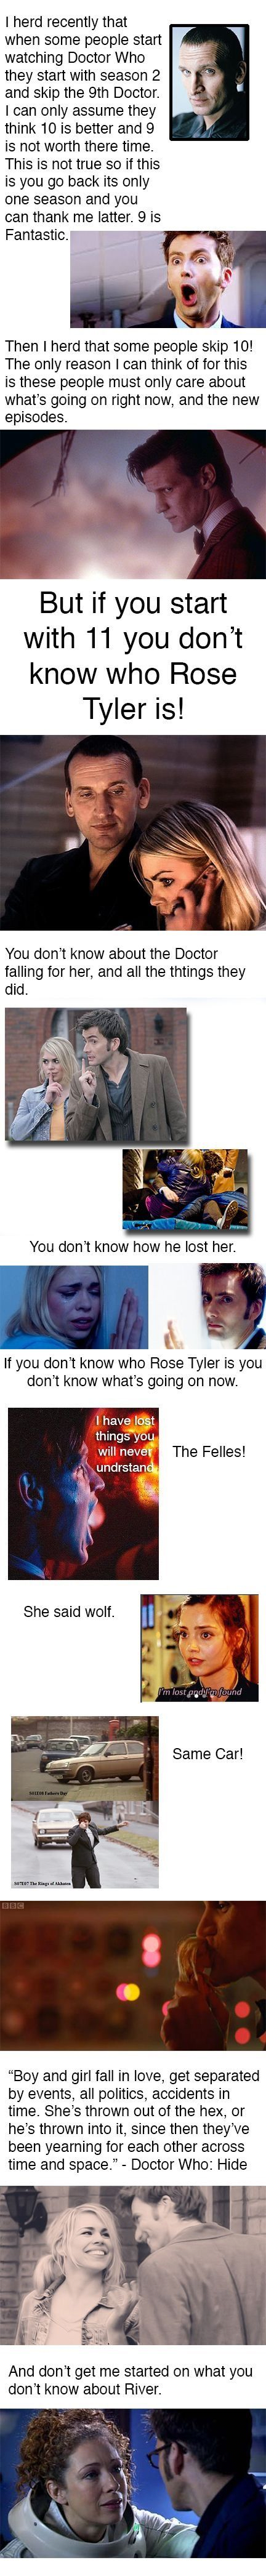 Not to mention that 9 and early 10 have some of the best episodes, even totally removed from romance.